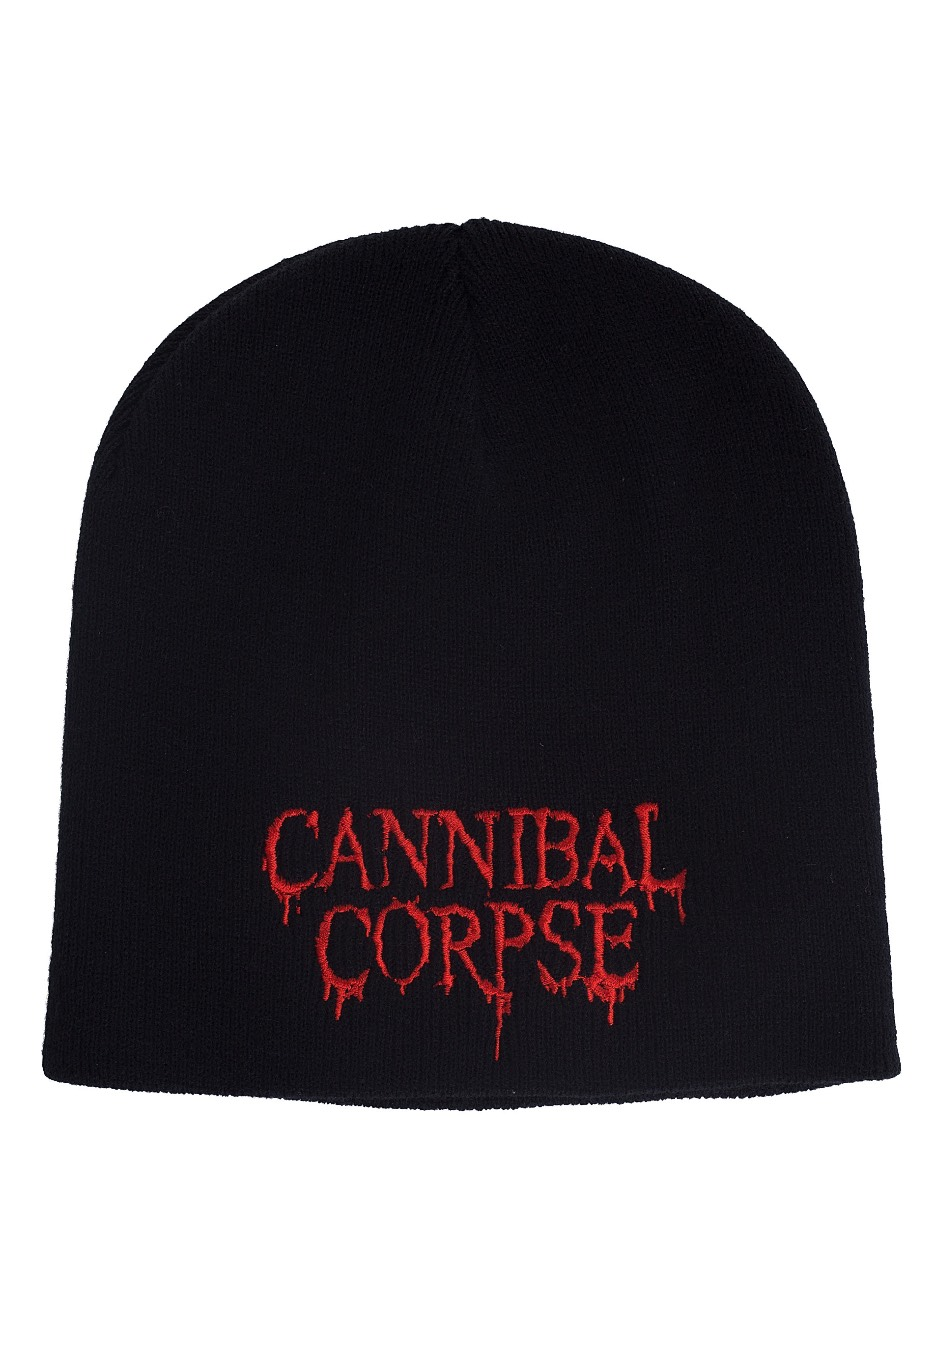 Cannibal Corpse - Red Logo - Beanie - Official Death Metal ... 212c7af4cd6